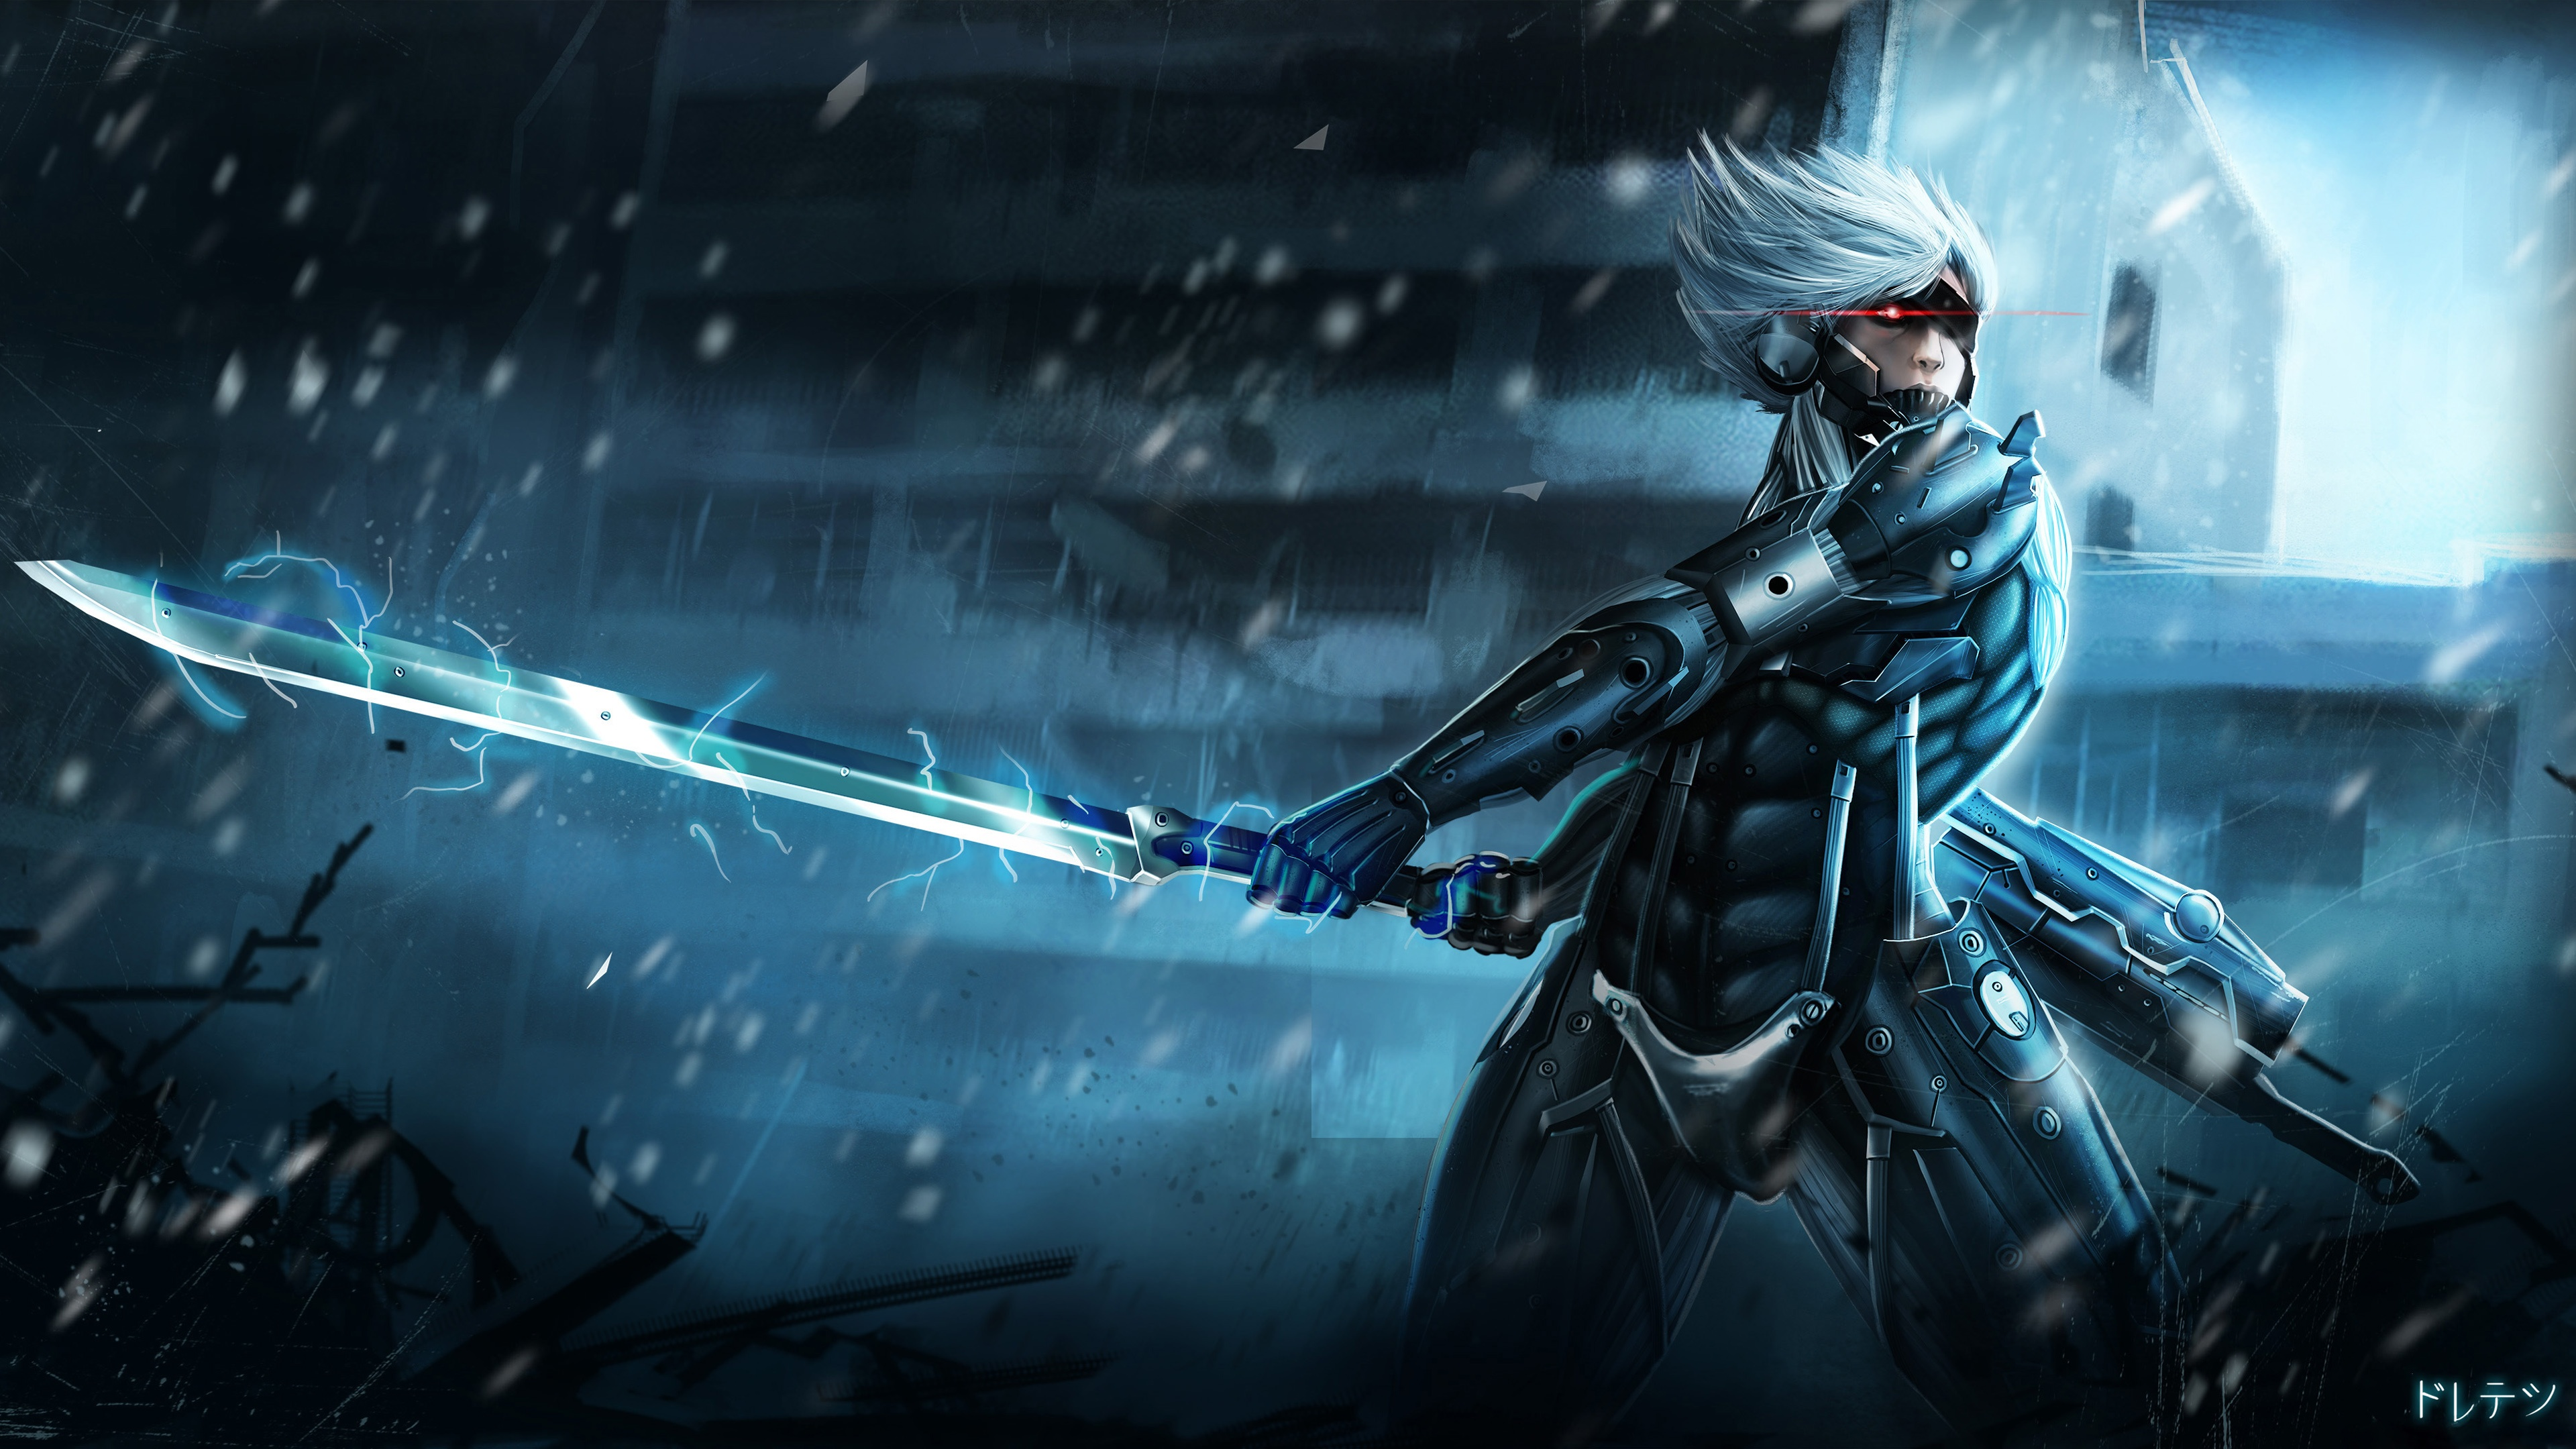 Metal gear rising raiden 4k ultra hd wallpaper and background image video game metal gear rising revengeance wallpaper voltagebd